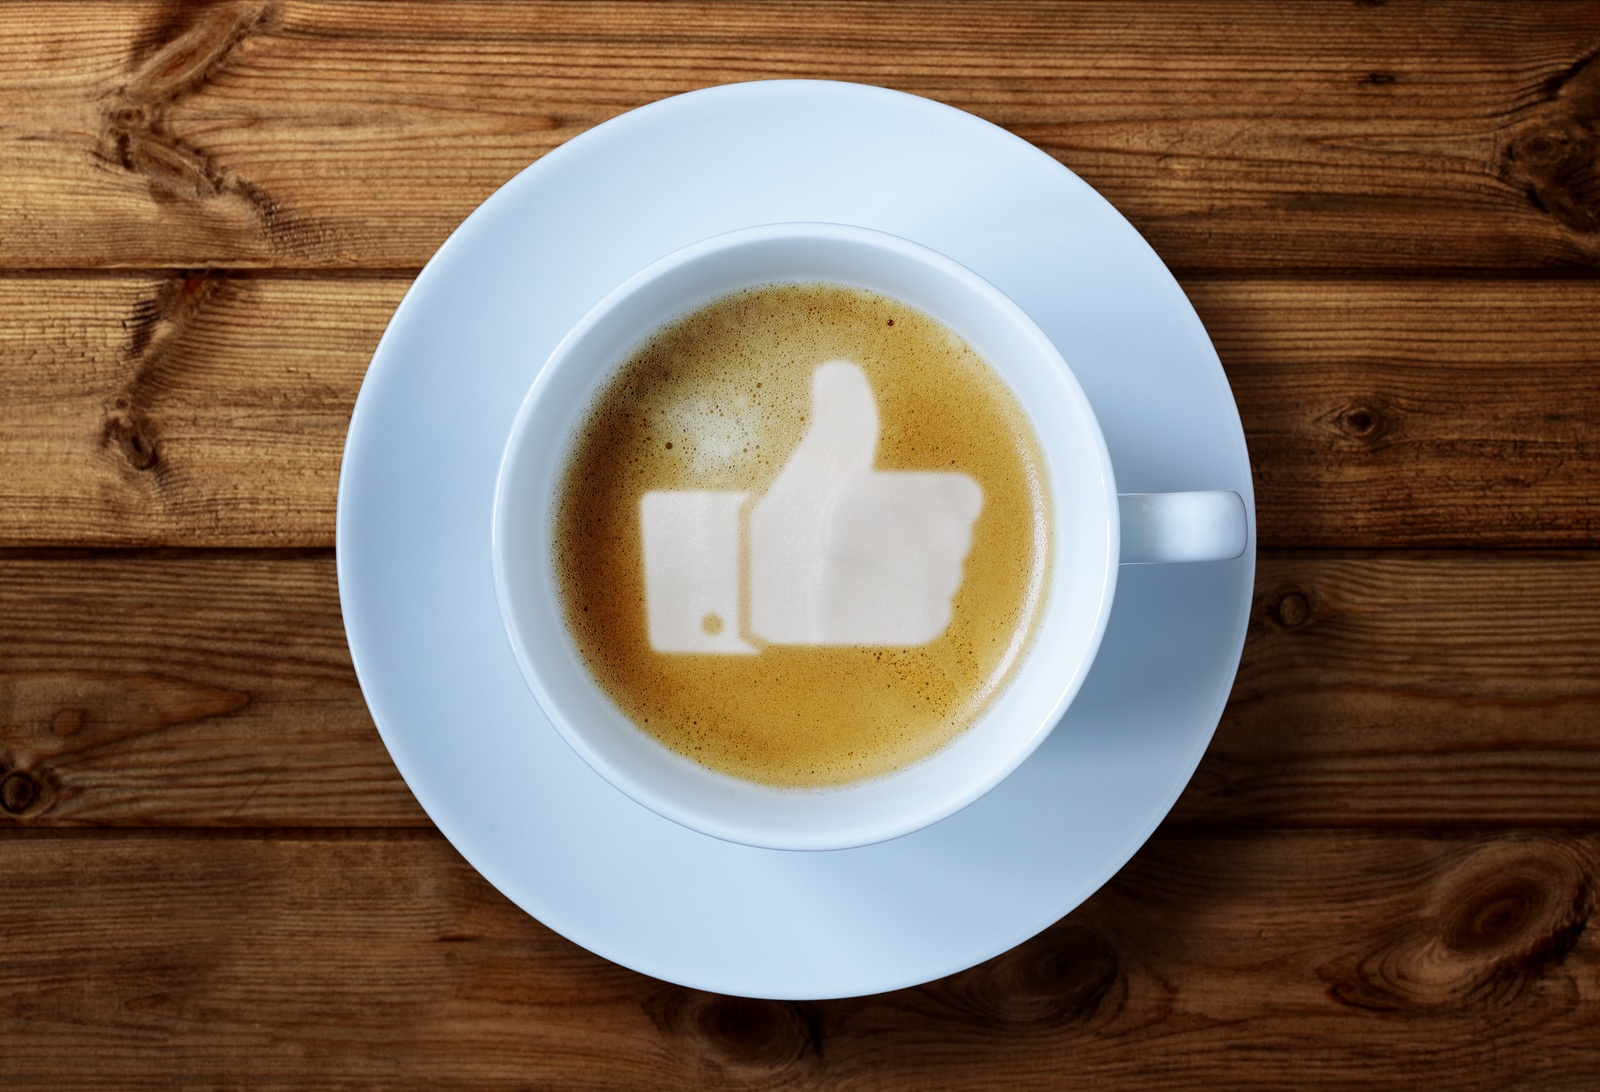 Social media management as pleasant as a cup of joe that gives you props